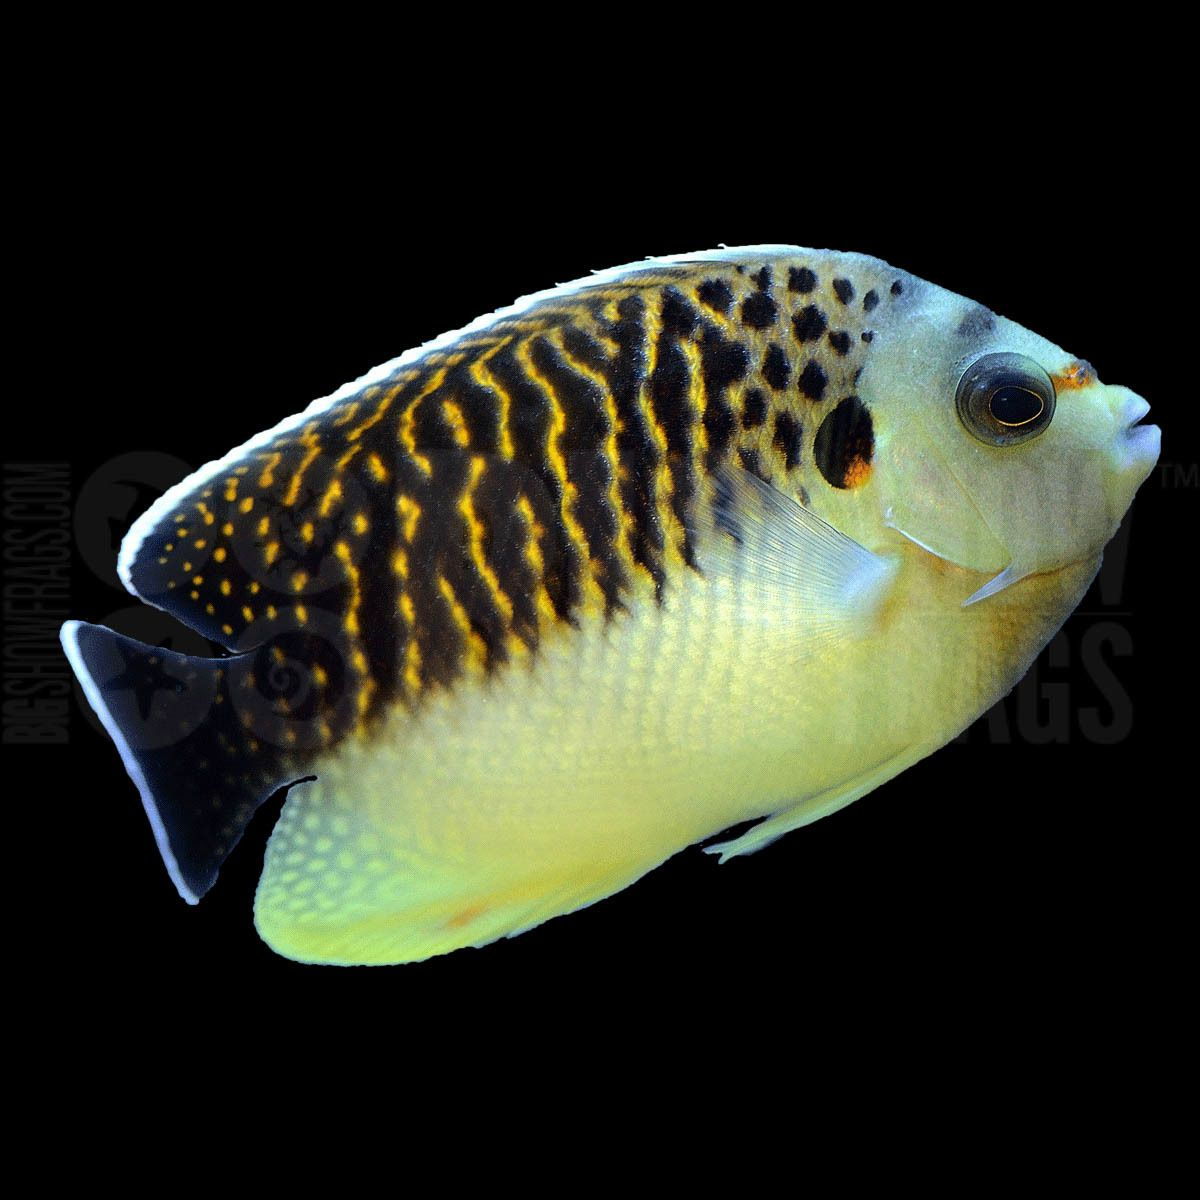 Rare Tiger Angelfish 280 Gem Tang Available Now At Reef Lounge Usa Https Www Reef2reef Com Threads Gem Tang Sale Only 280 In 2020 Angel Fish Marine Fish Fish Pet